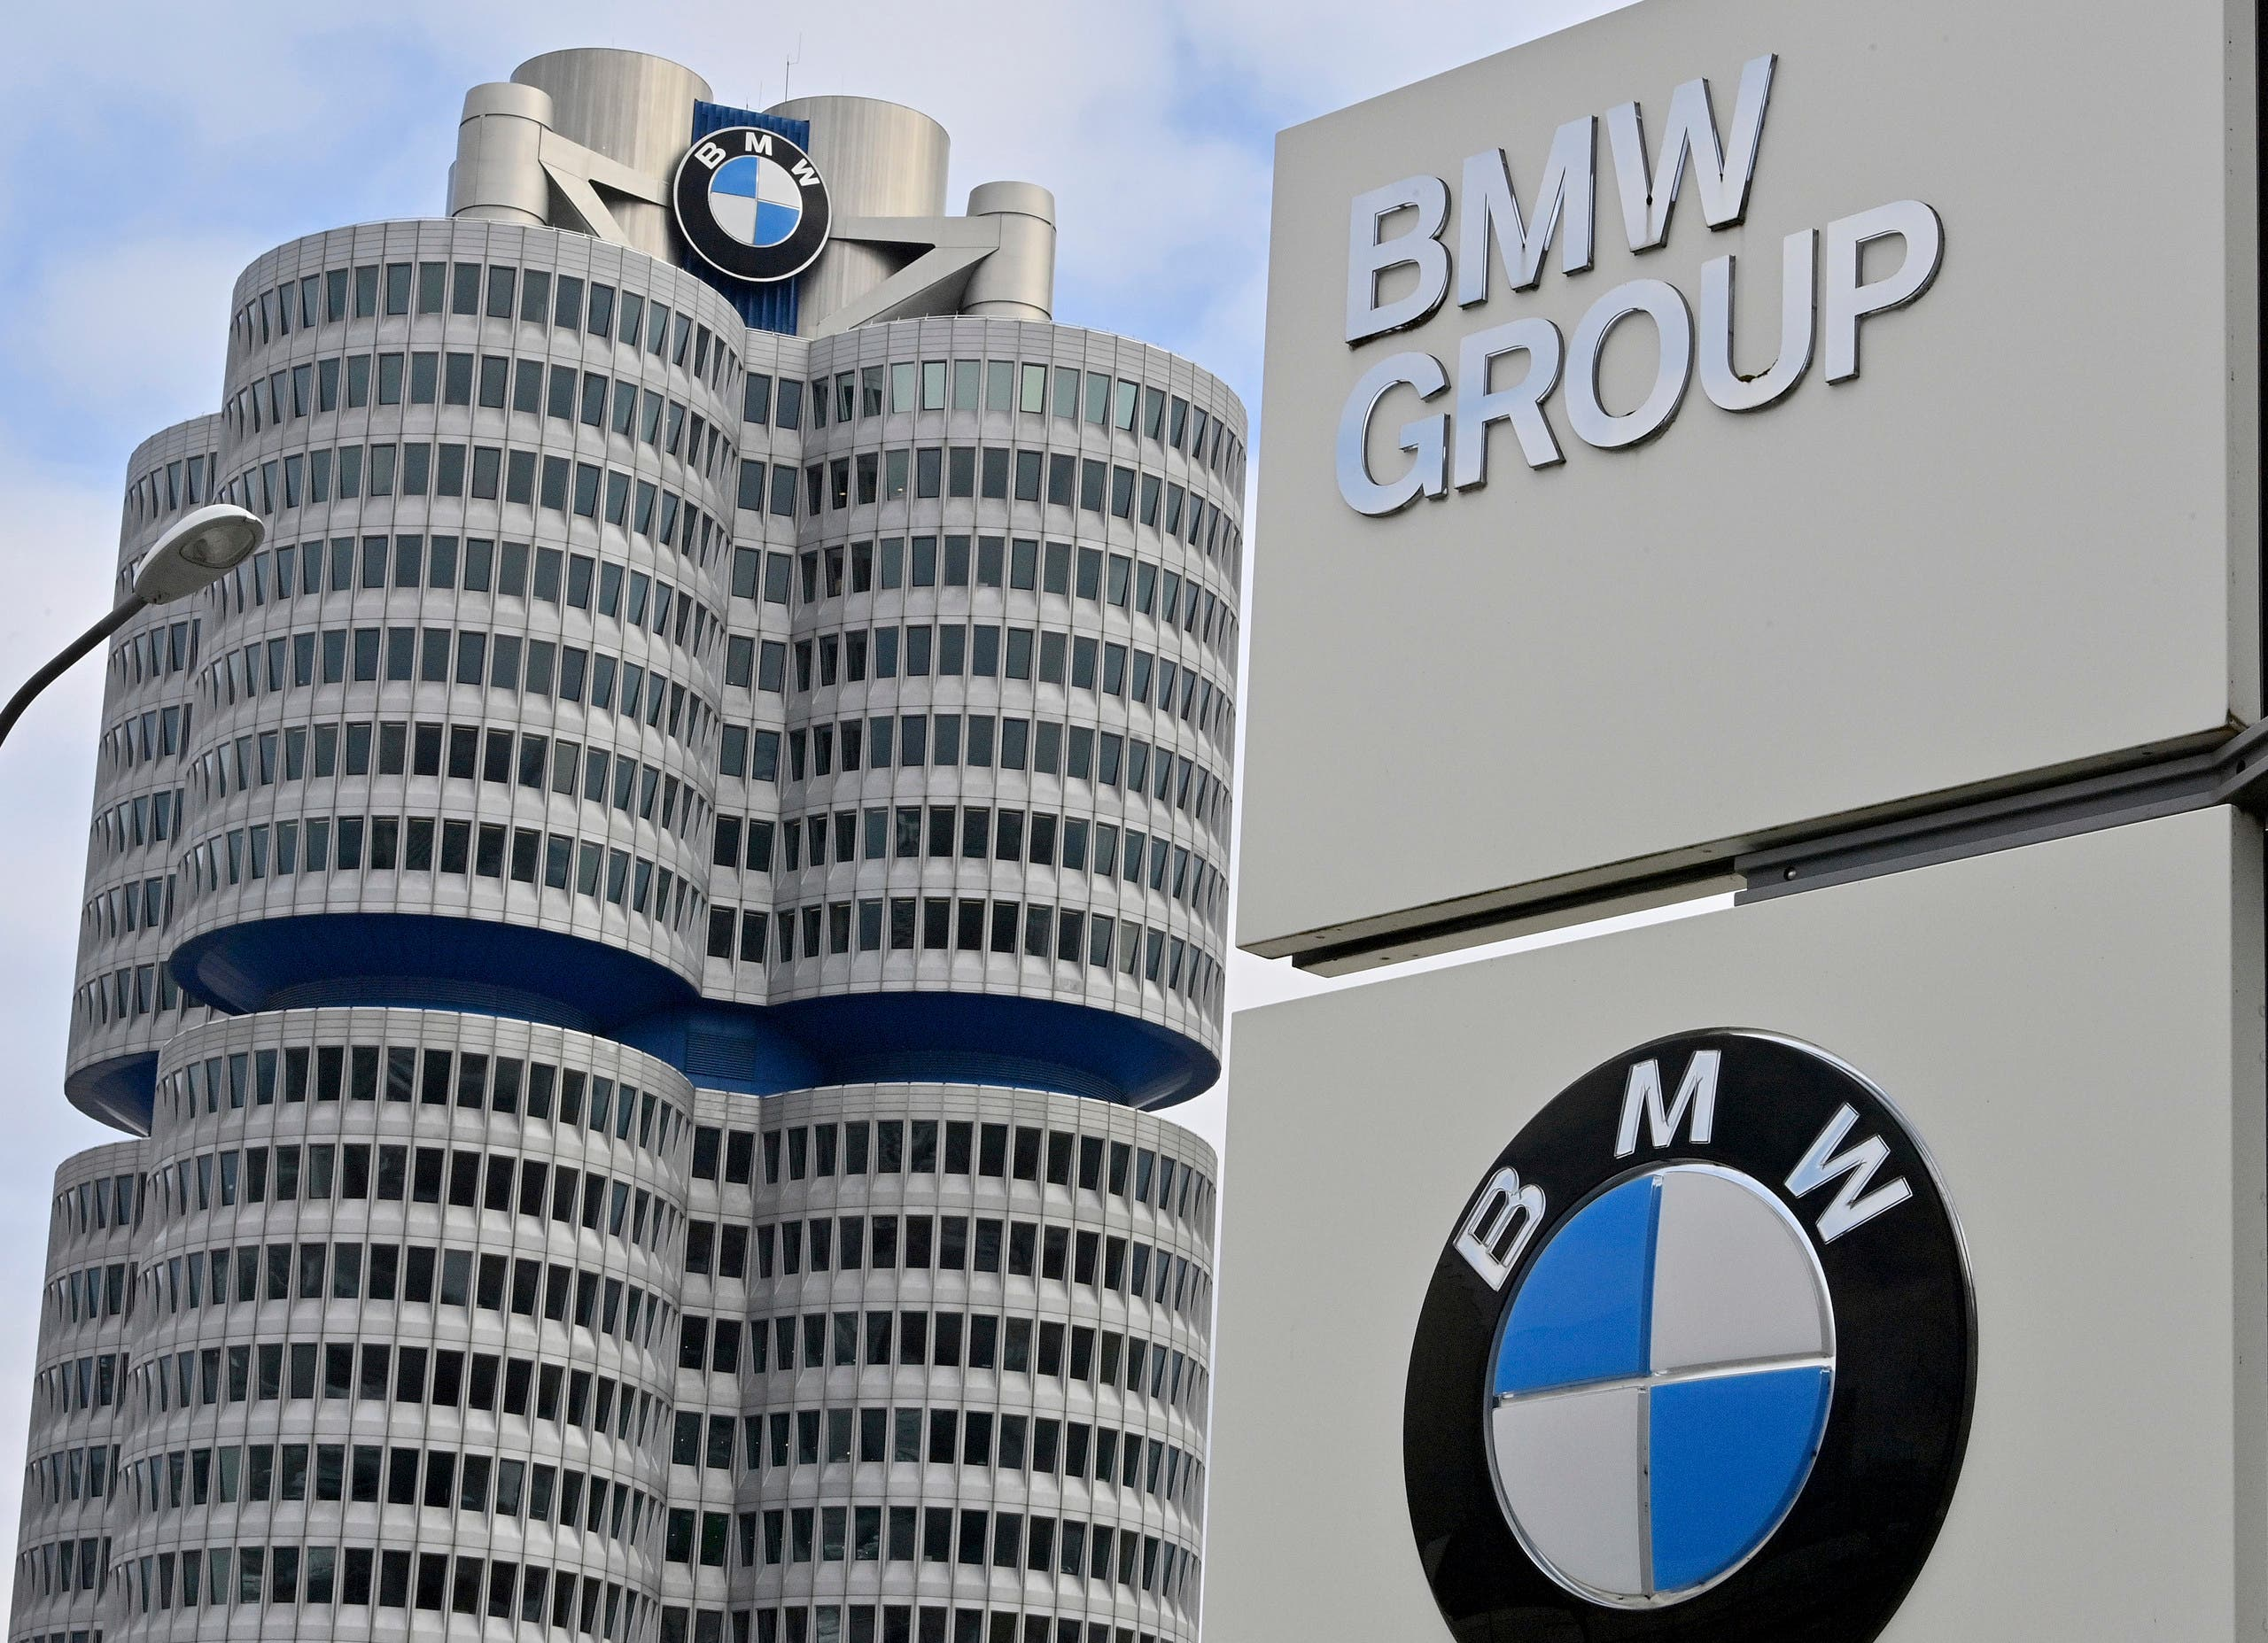 The BMW Group headquarters are pictured in Munich, Germany, Wednesday, March 16, 2021. German automaker BMW said Wednesday it intends to speed up the rollout of new electric cars, vowing to bring battery powered models to 50% of global sales by 2030. (Peter Kneffel/dpa via AP)